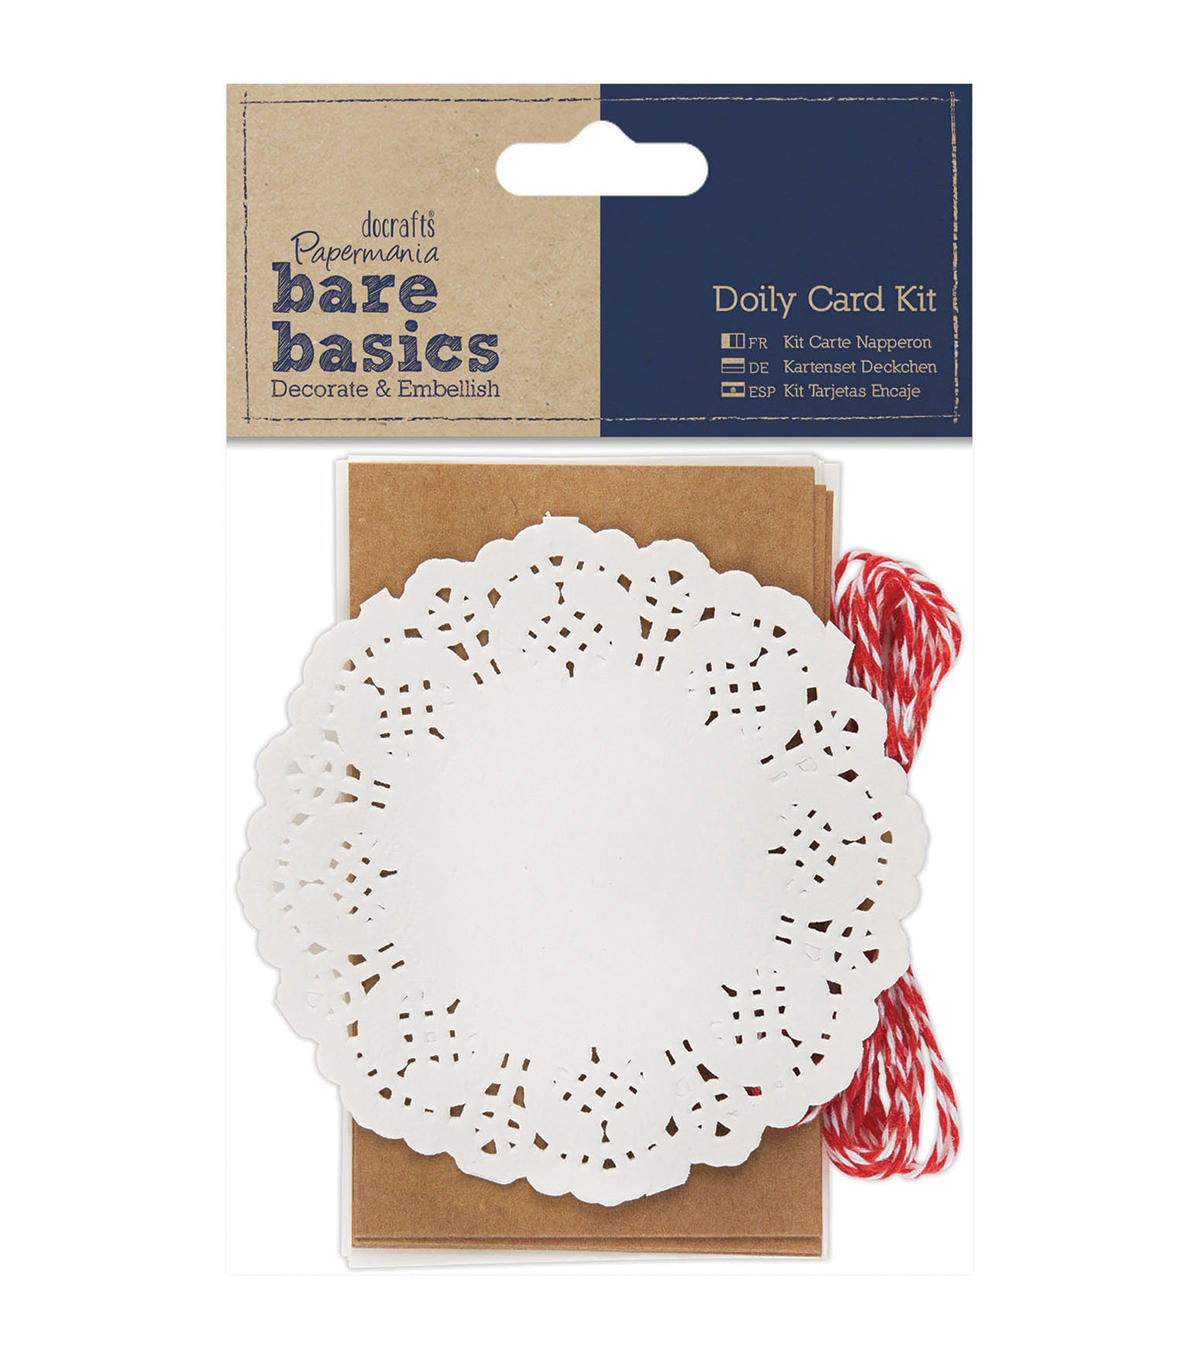 Papermania Bare Basics Doily Card Kit